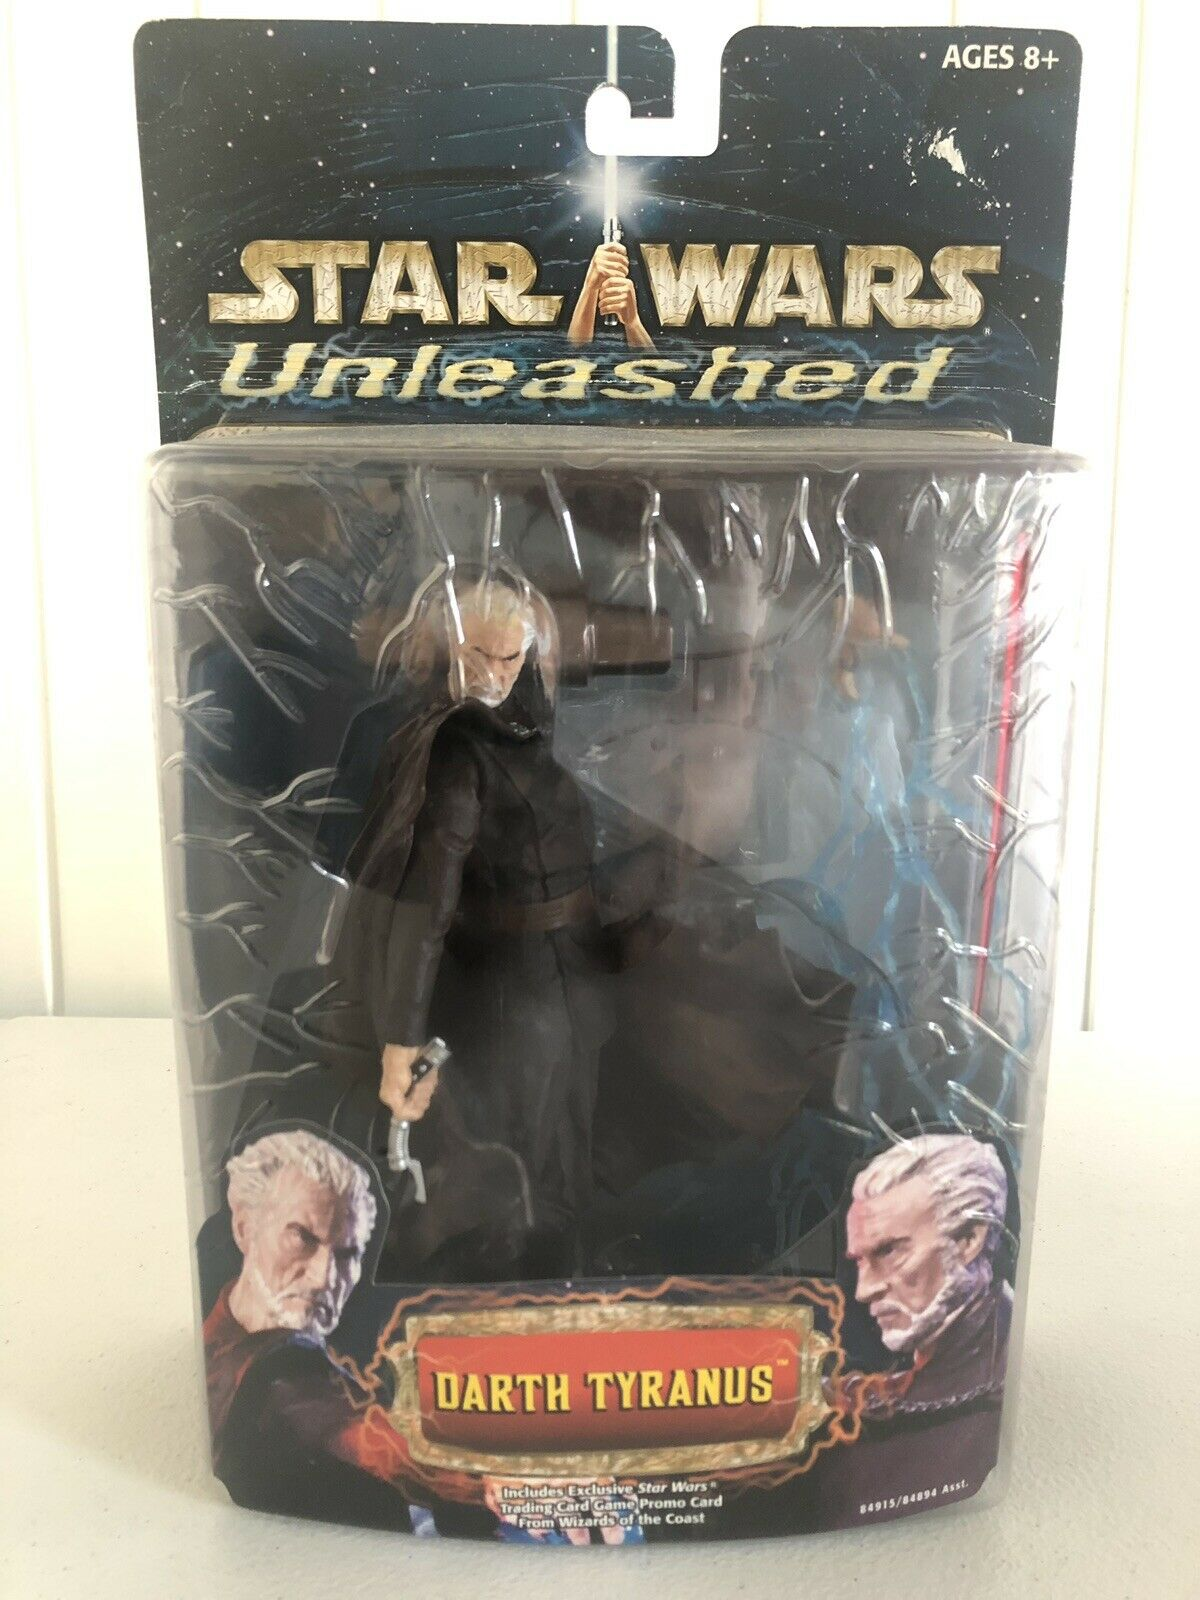 estrella guerras Unleashed Darth Tyranus Count Dooku cifra Sealed